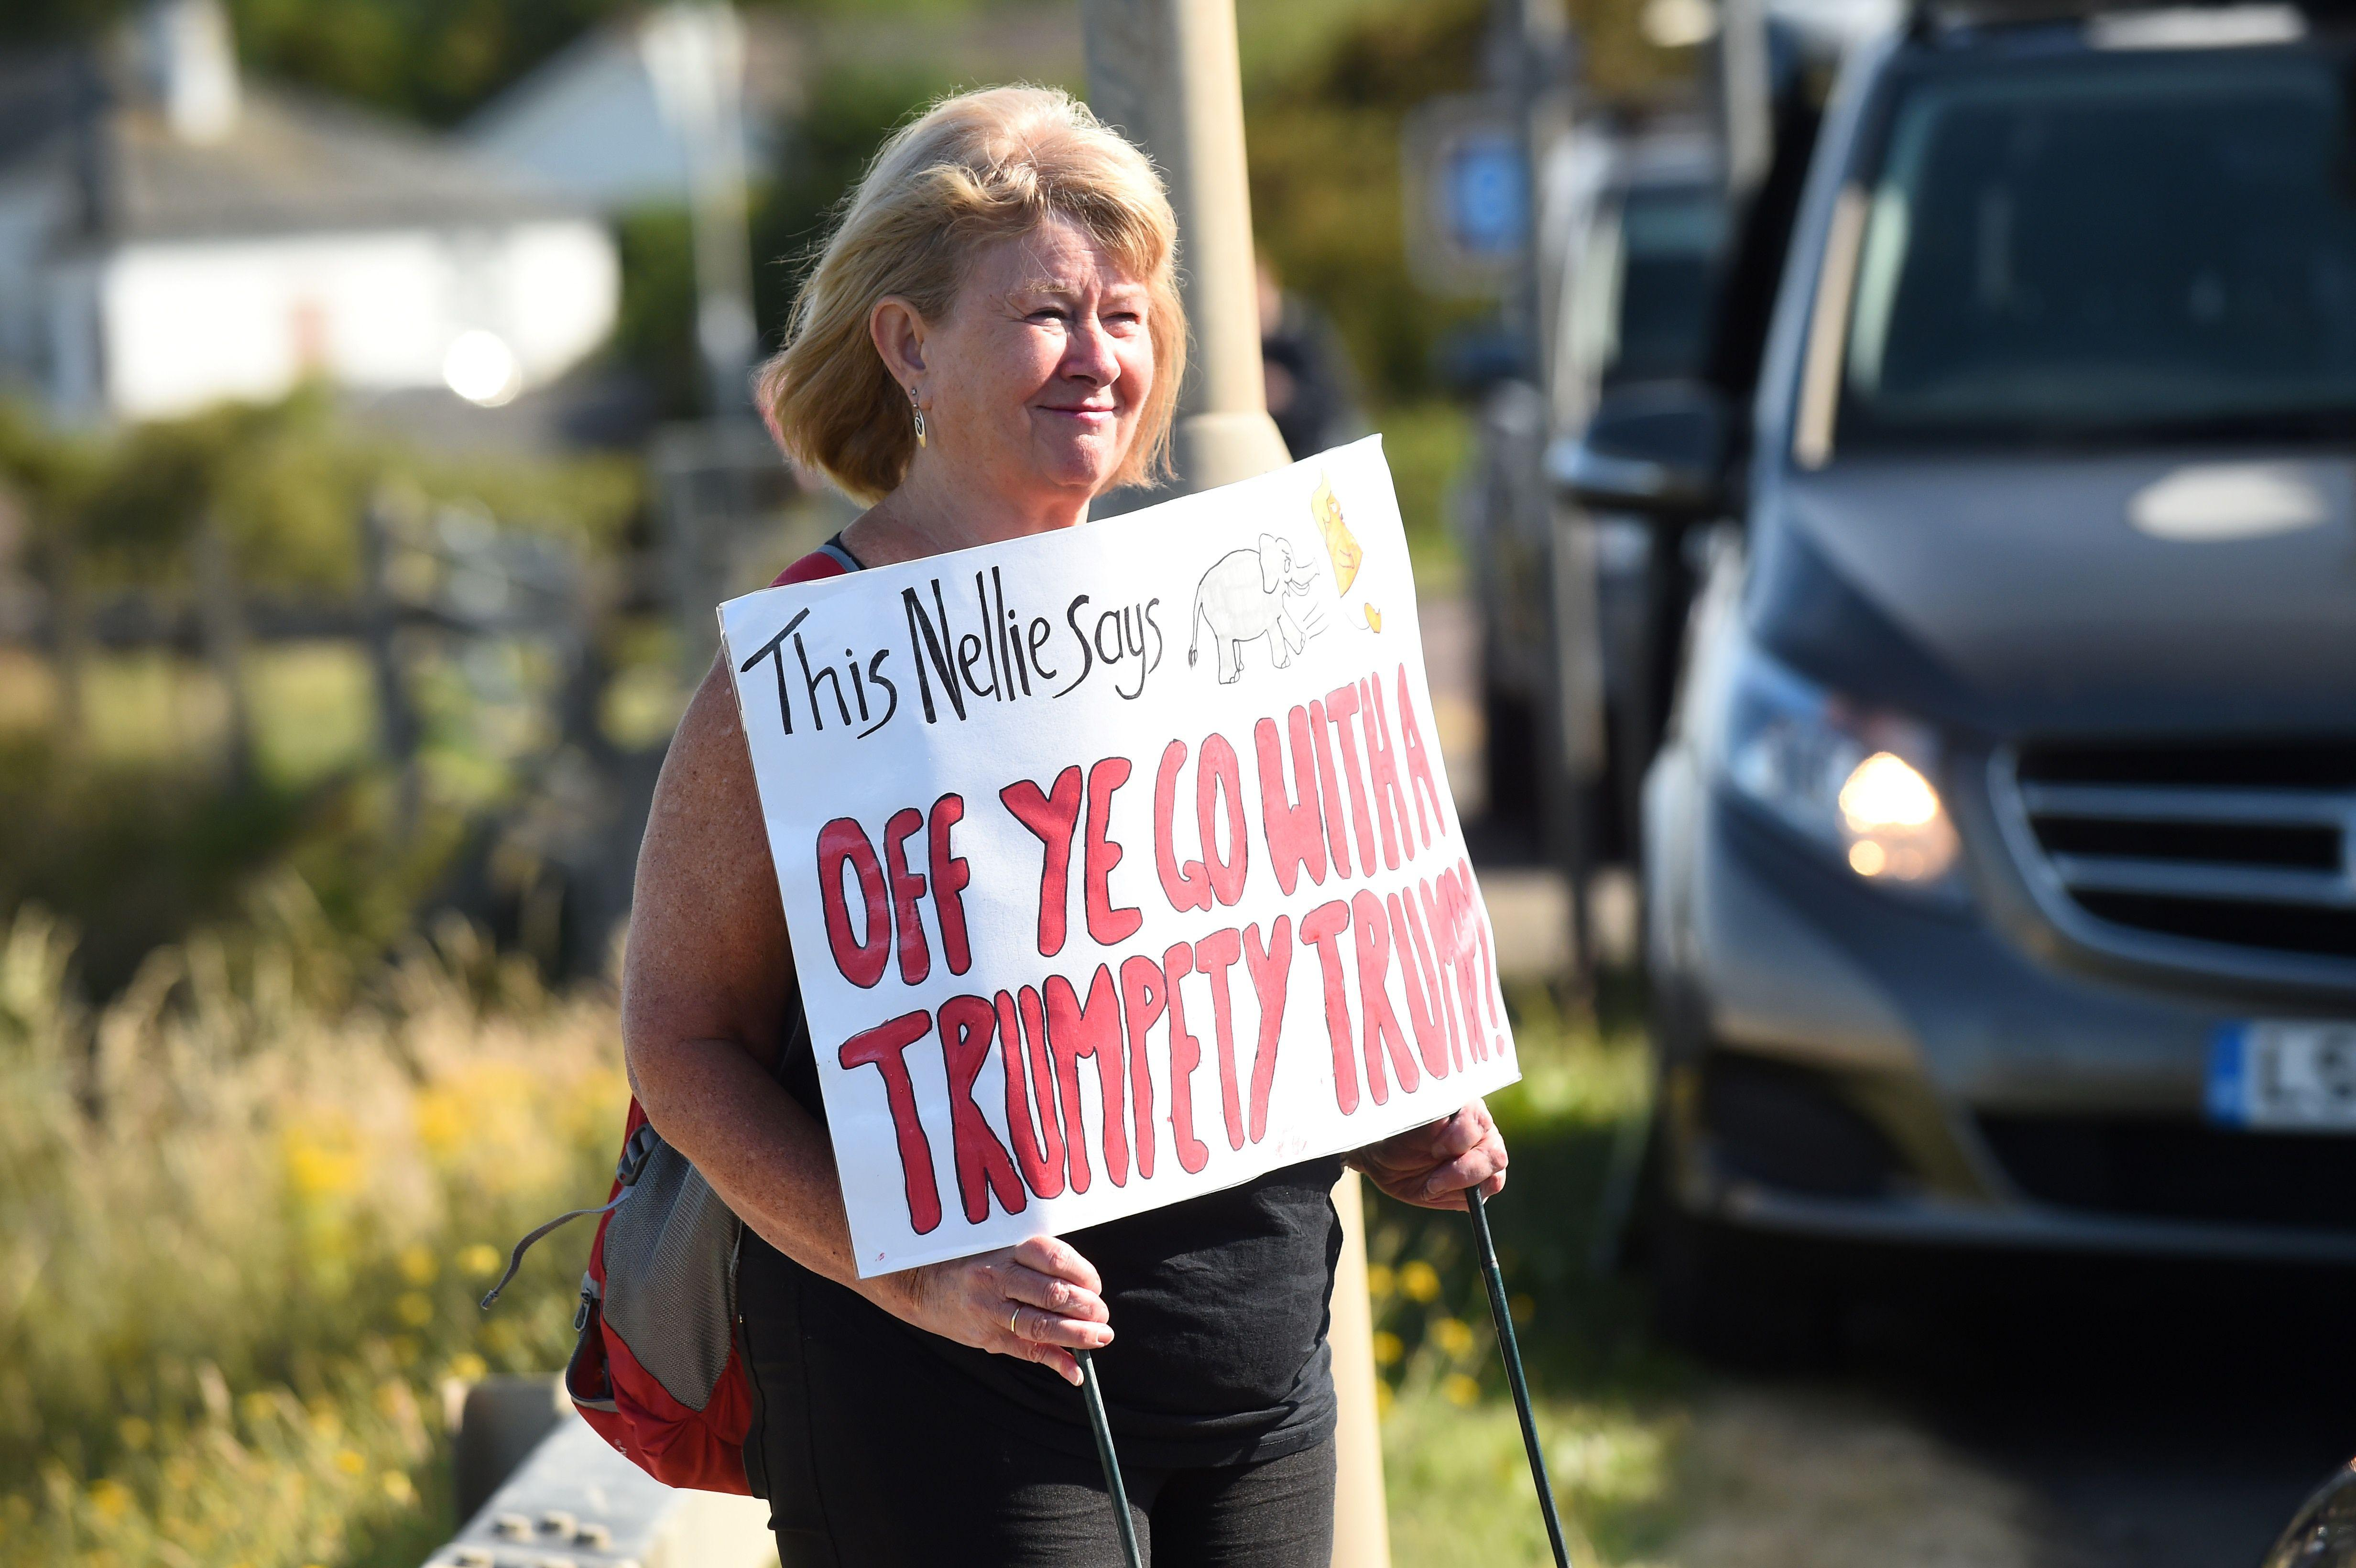 A protestor against the UK visit of US President Donald Trump holds a placard outside Trump Turnberry, the luxury golf resort of US President Donald Trump, in Turnberry, southwest of Glasgow, Scotland on July 14, 2018.